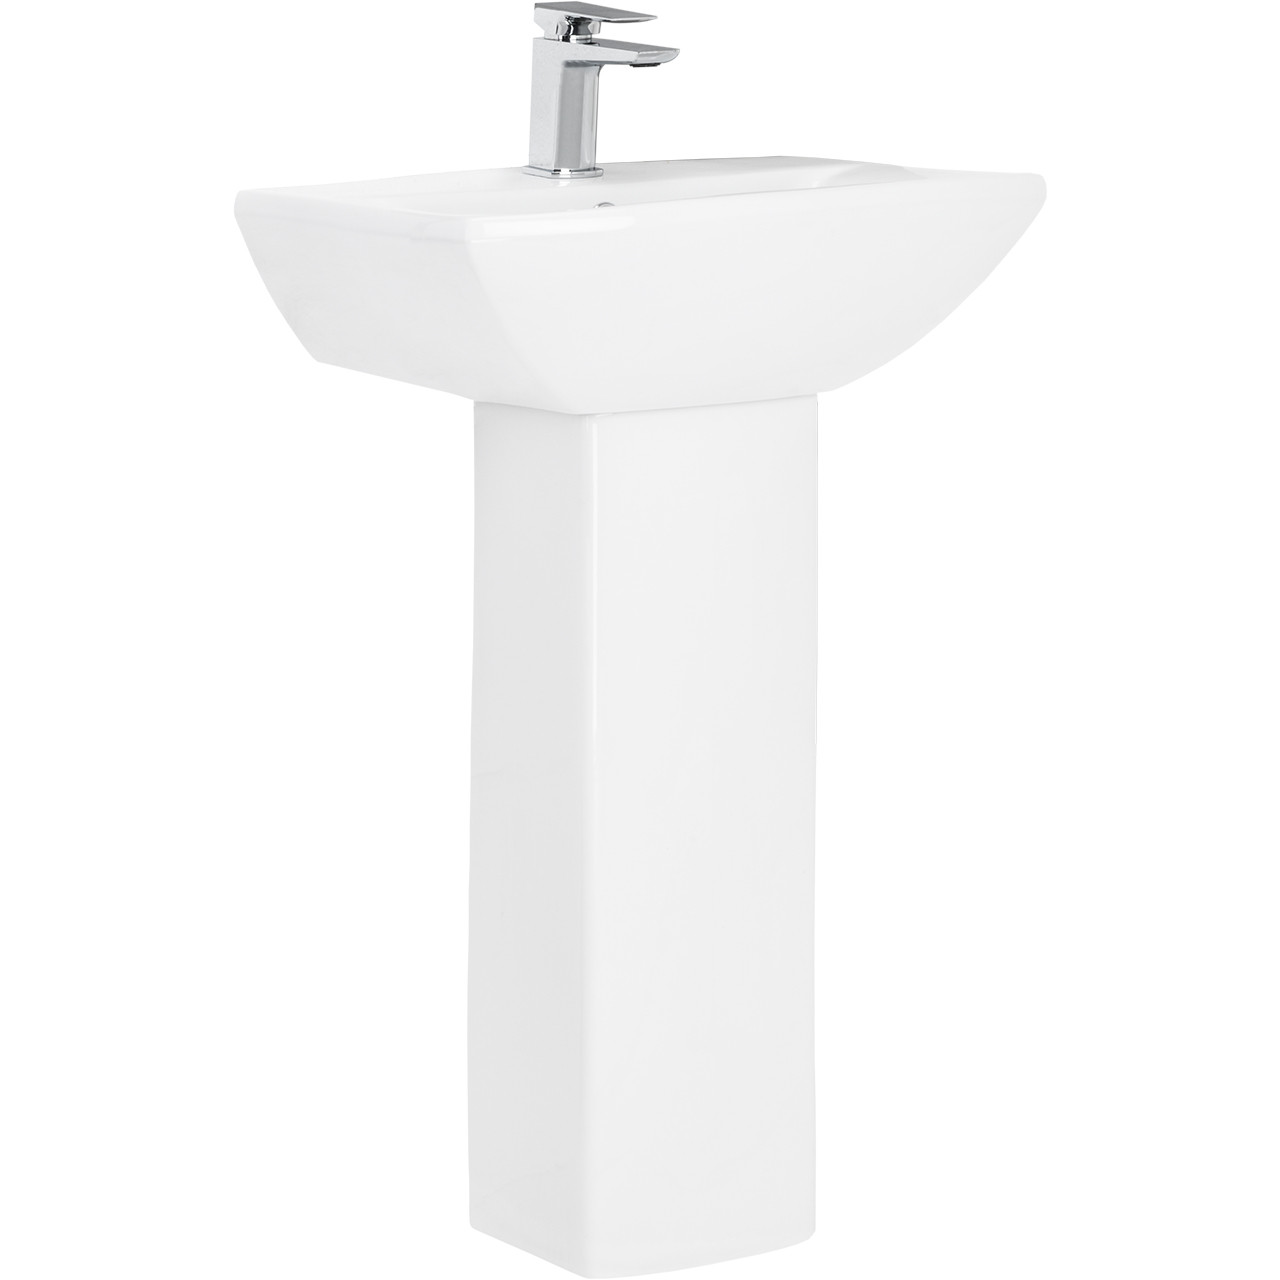 Ailsa 500mm Basin with 1 Tap Hole and Full Pedestal